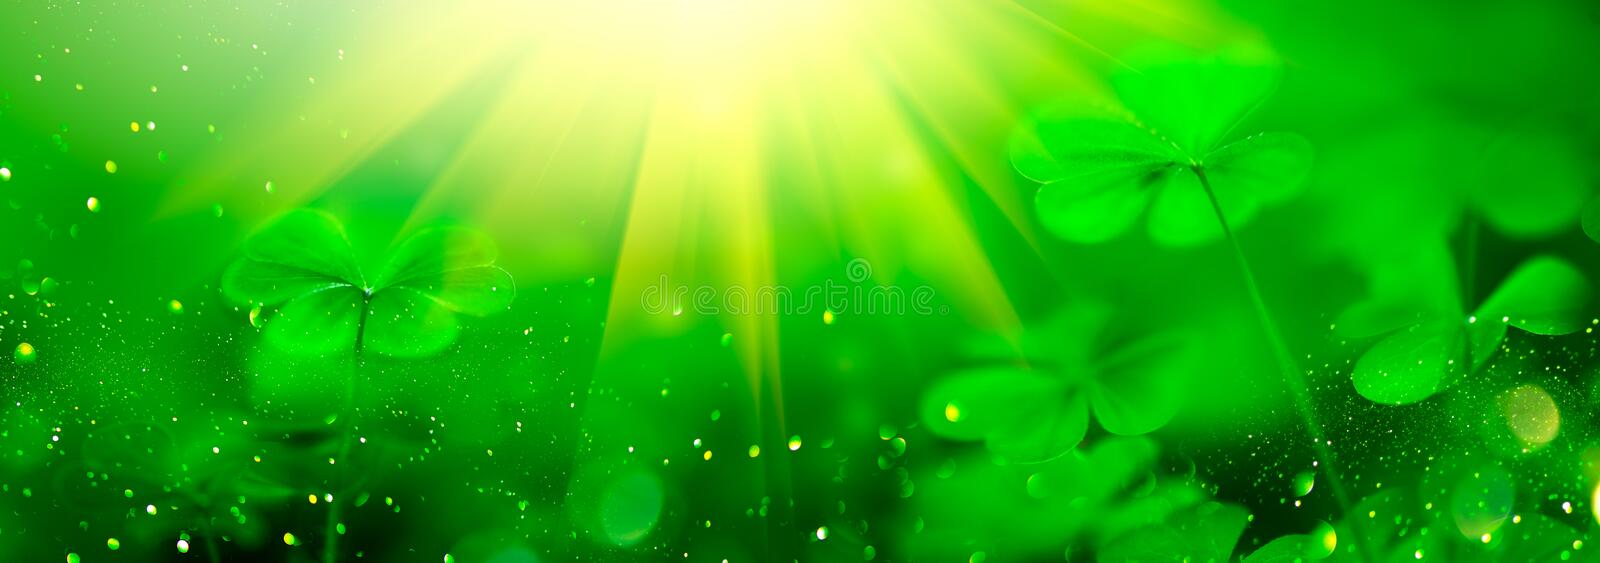 St. Patrick`s Day green blurred background with shamrock leaves. Patrick Day. Abstract border art design royalty free stock photos